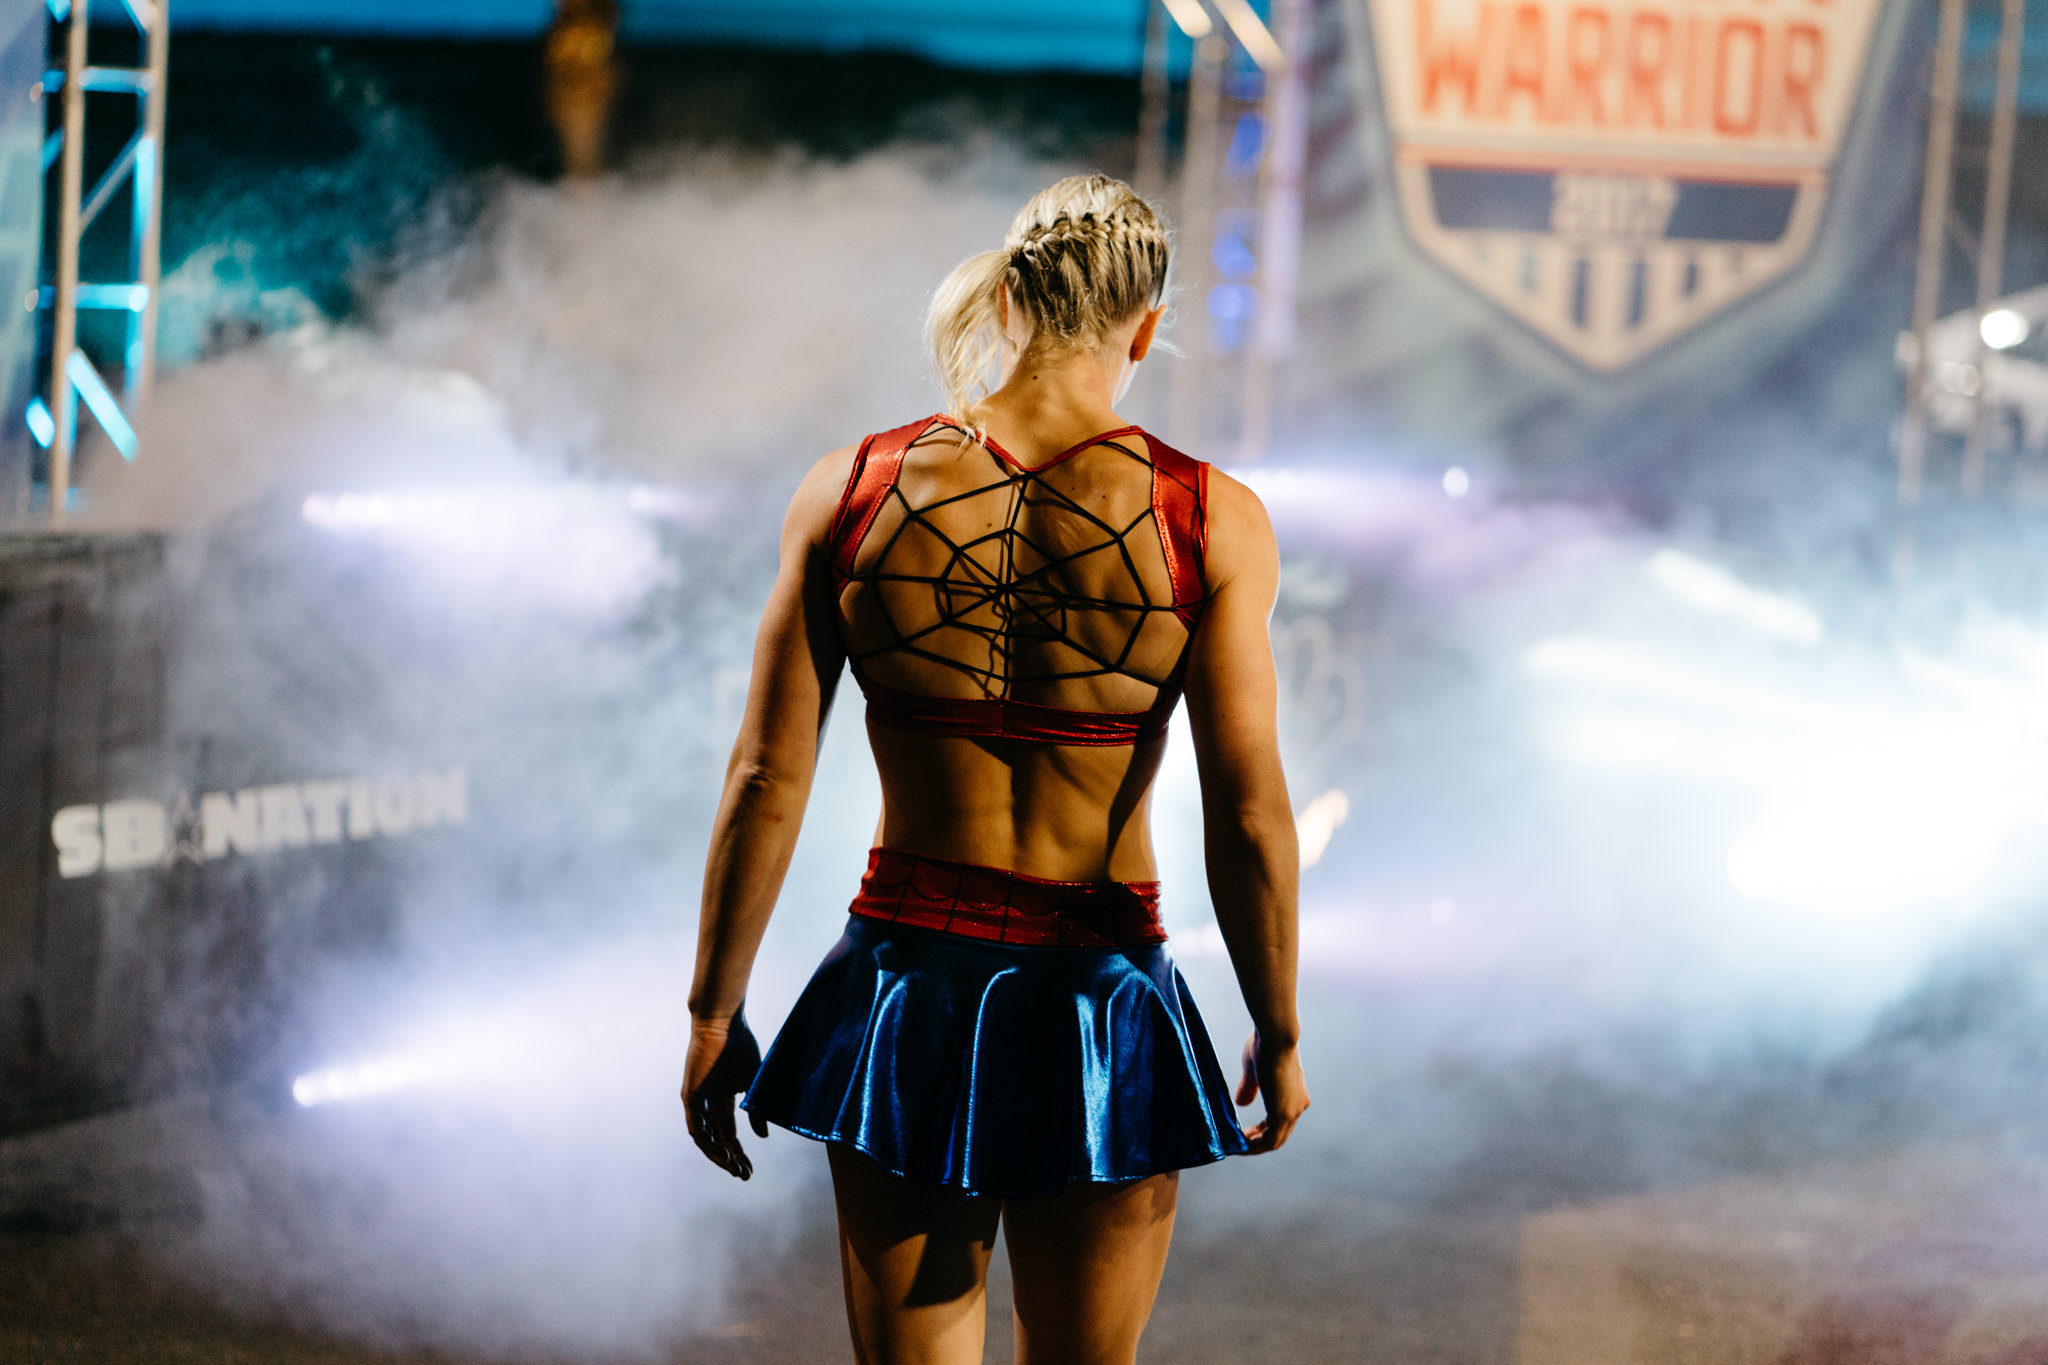 NBC's  American Ninja Warrior    |  Season 9  This show is always such a blast to shoot. For Season 9, I traveled with the show to Los Angeles, San Antonio, Daytona, Denver, & Las Vegas to capture all the behind the scenes action of the athletes & crew.